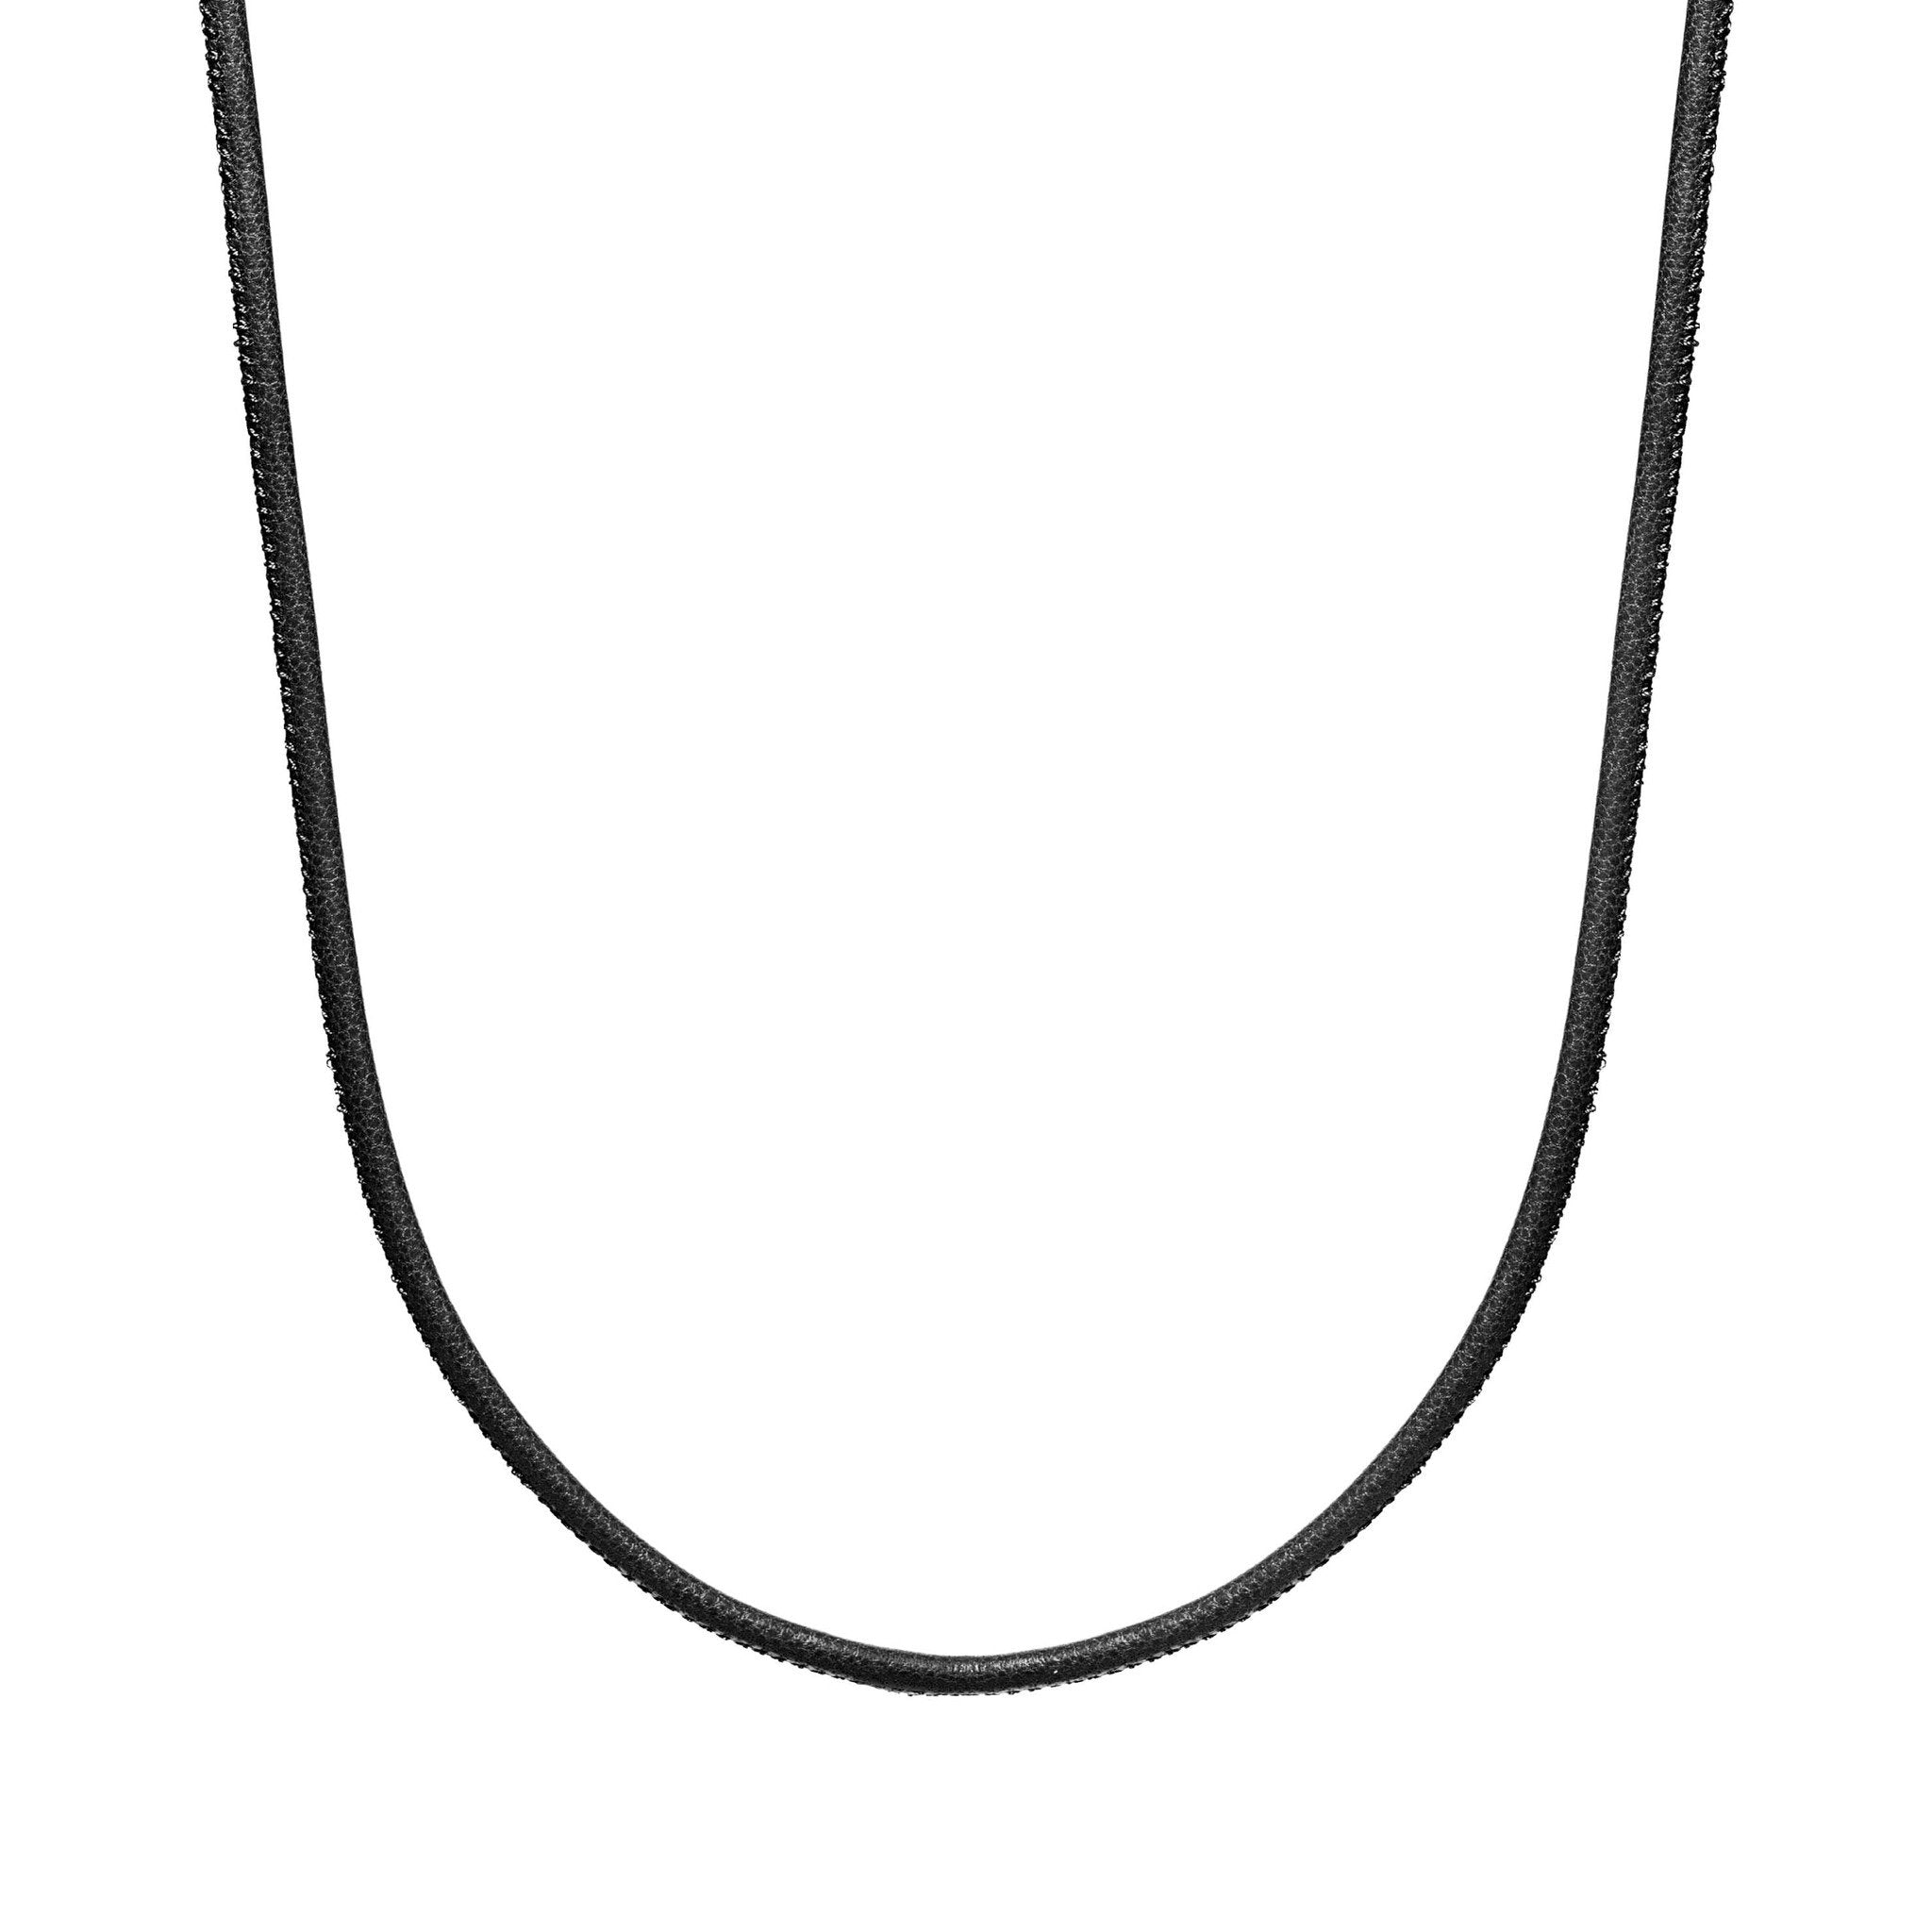 mizuki gold bolo in designers zoom necklaces product slider necklace leather diamond miz black